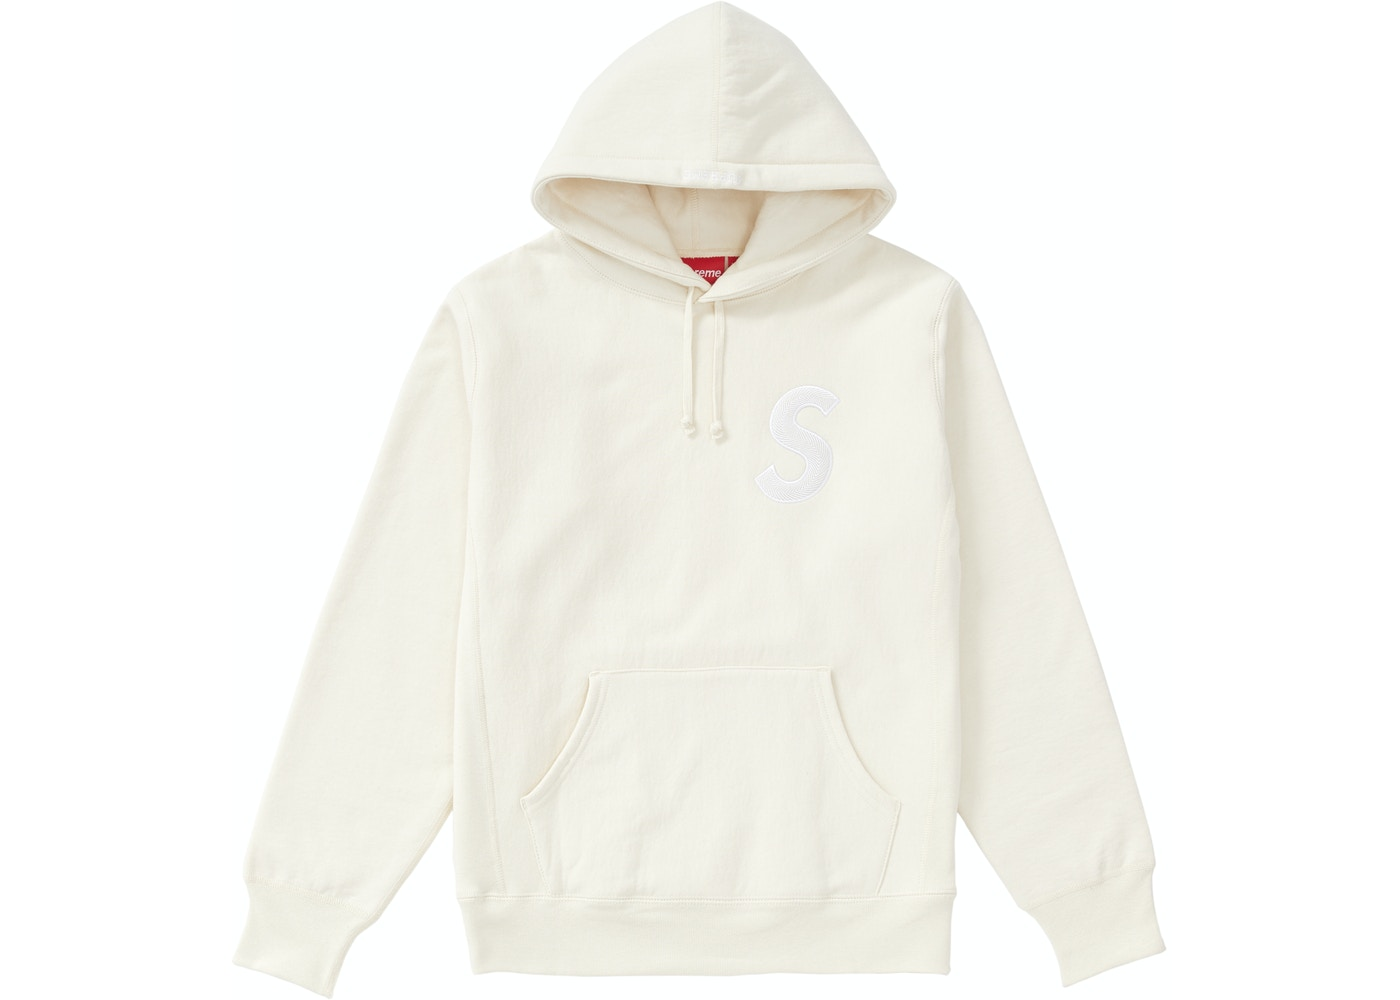 048dad72faa5 Supreme S Logo Hooded Sweatshirt (FW18) Natural - FW18